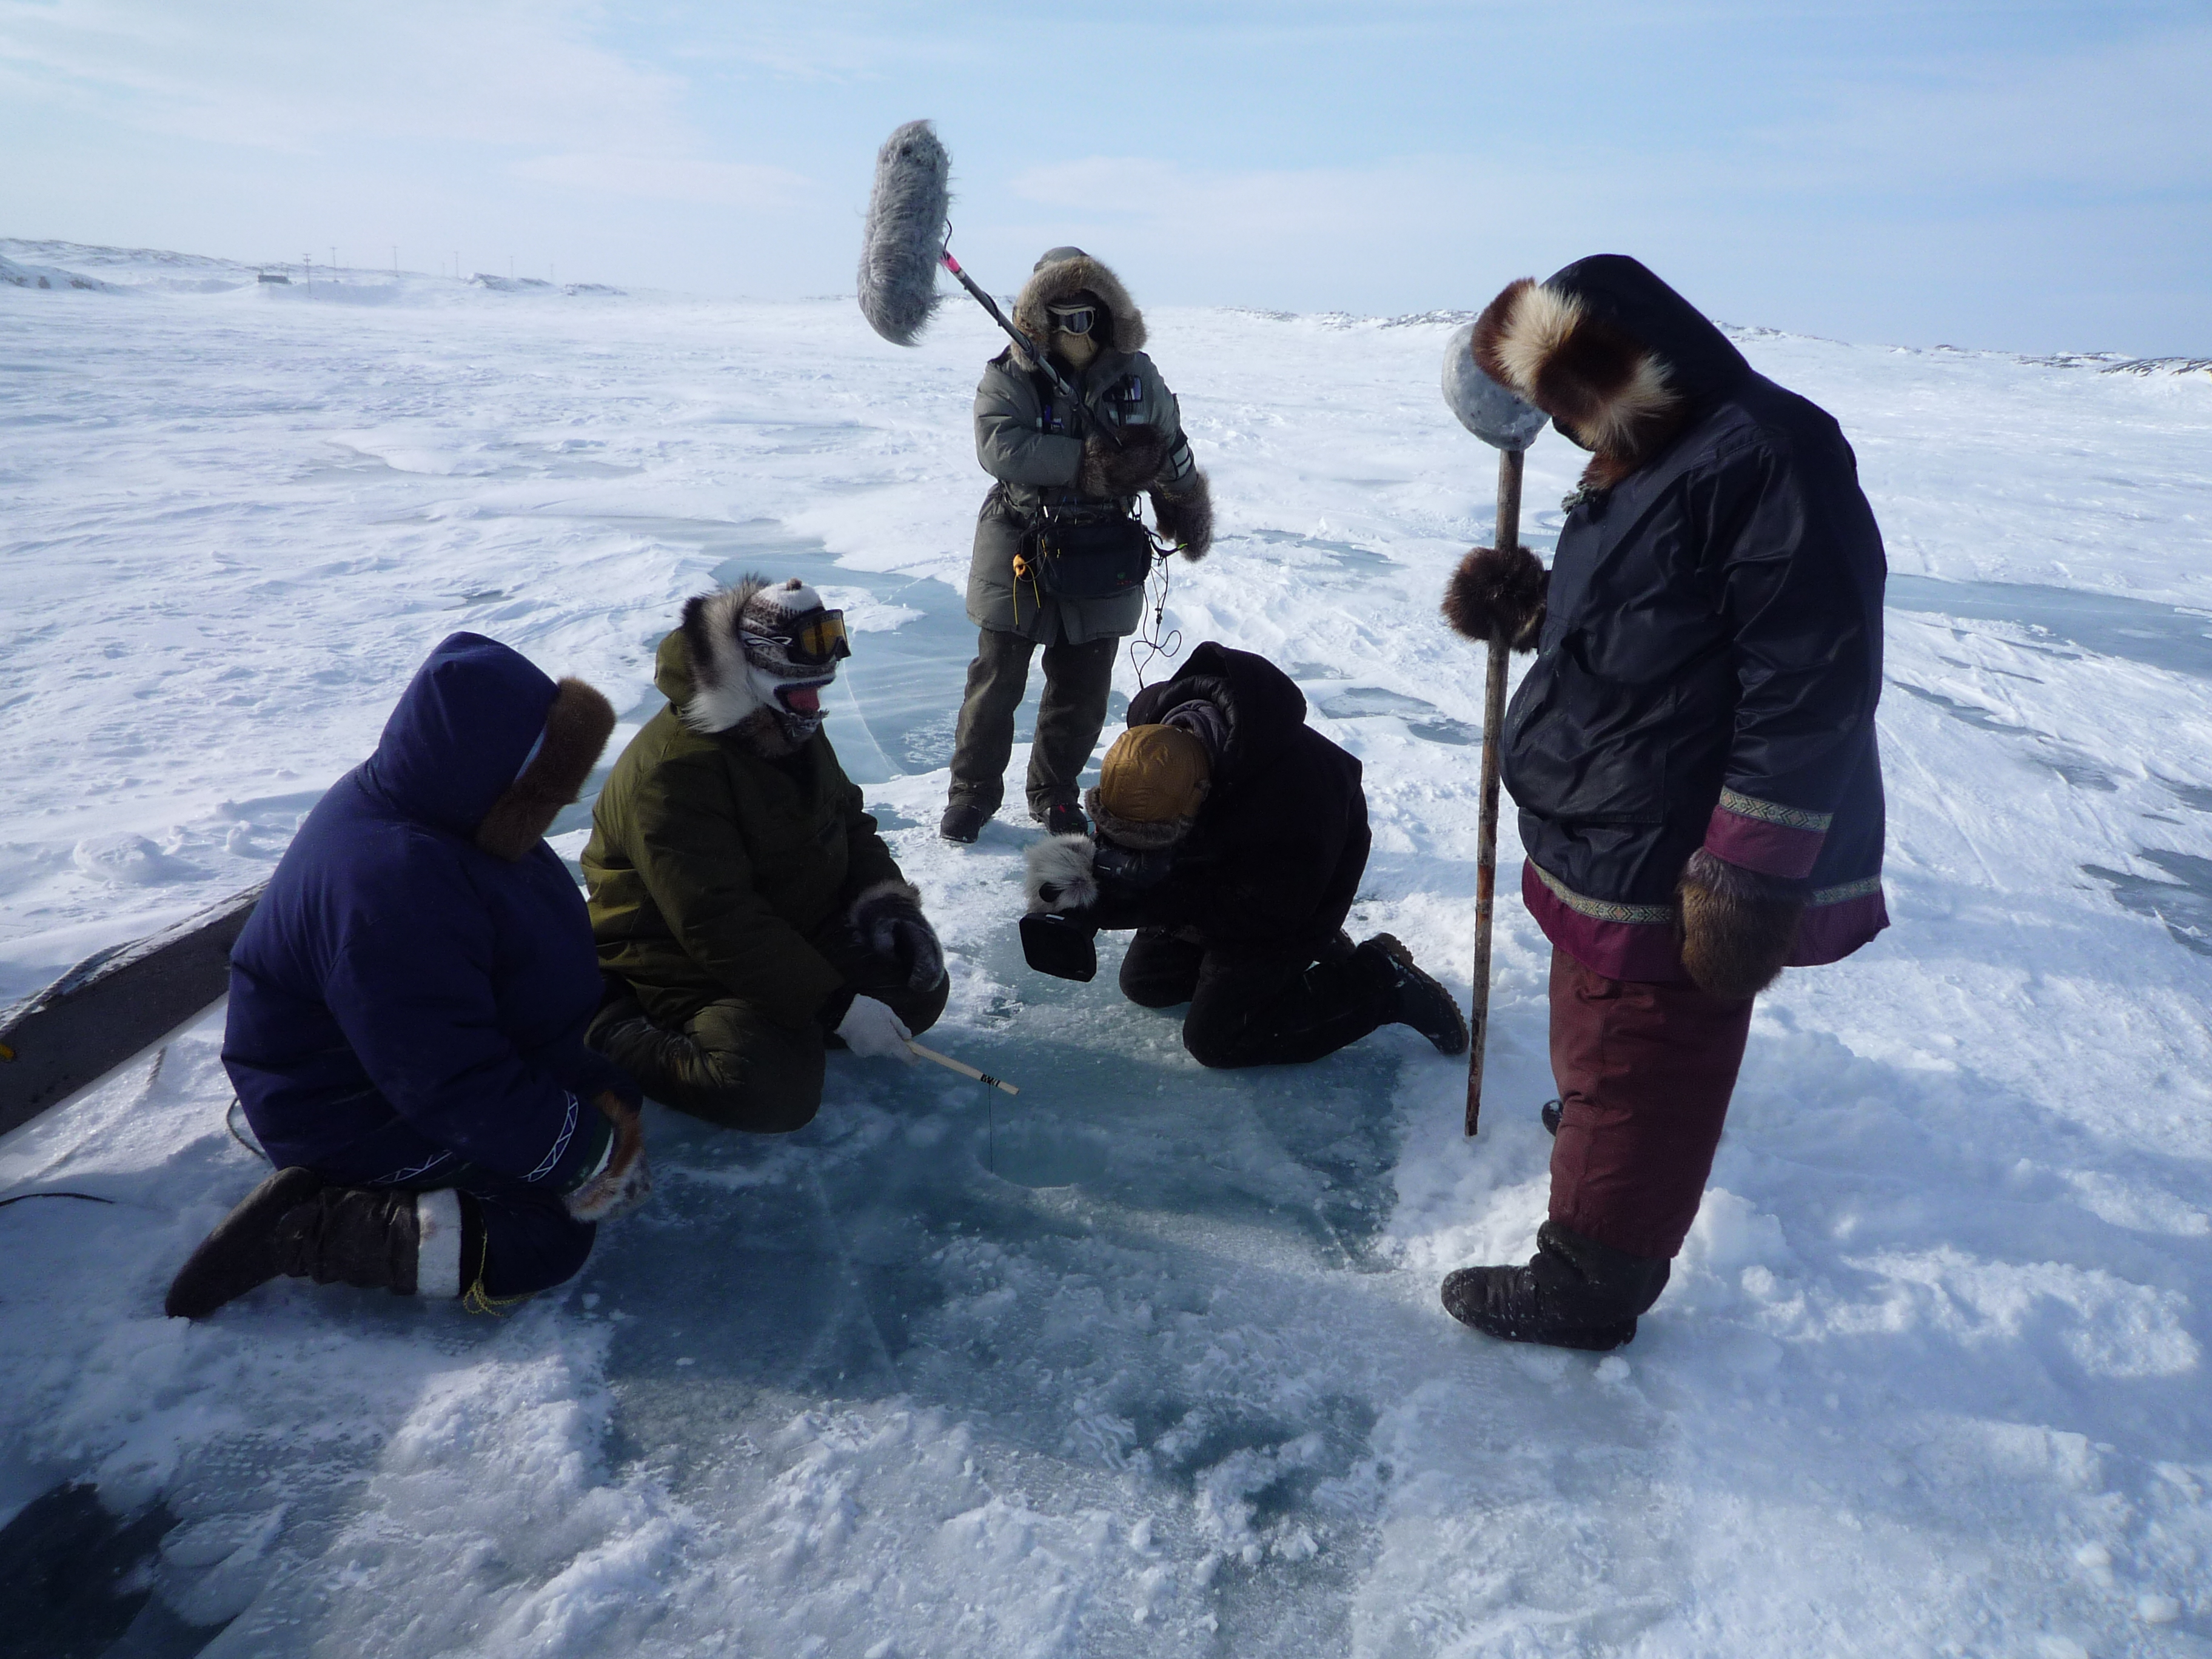 Icefishing in Canadian Arctic